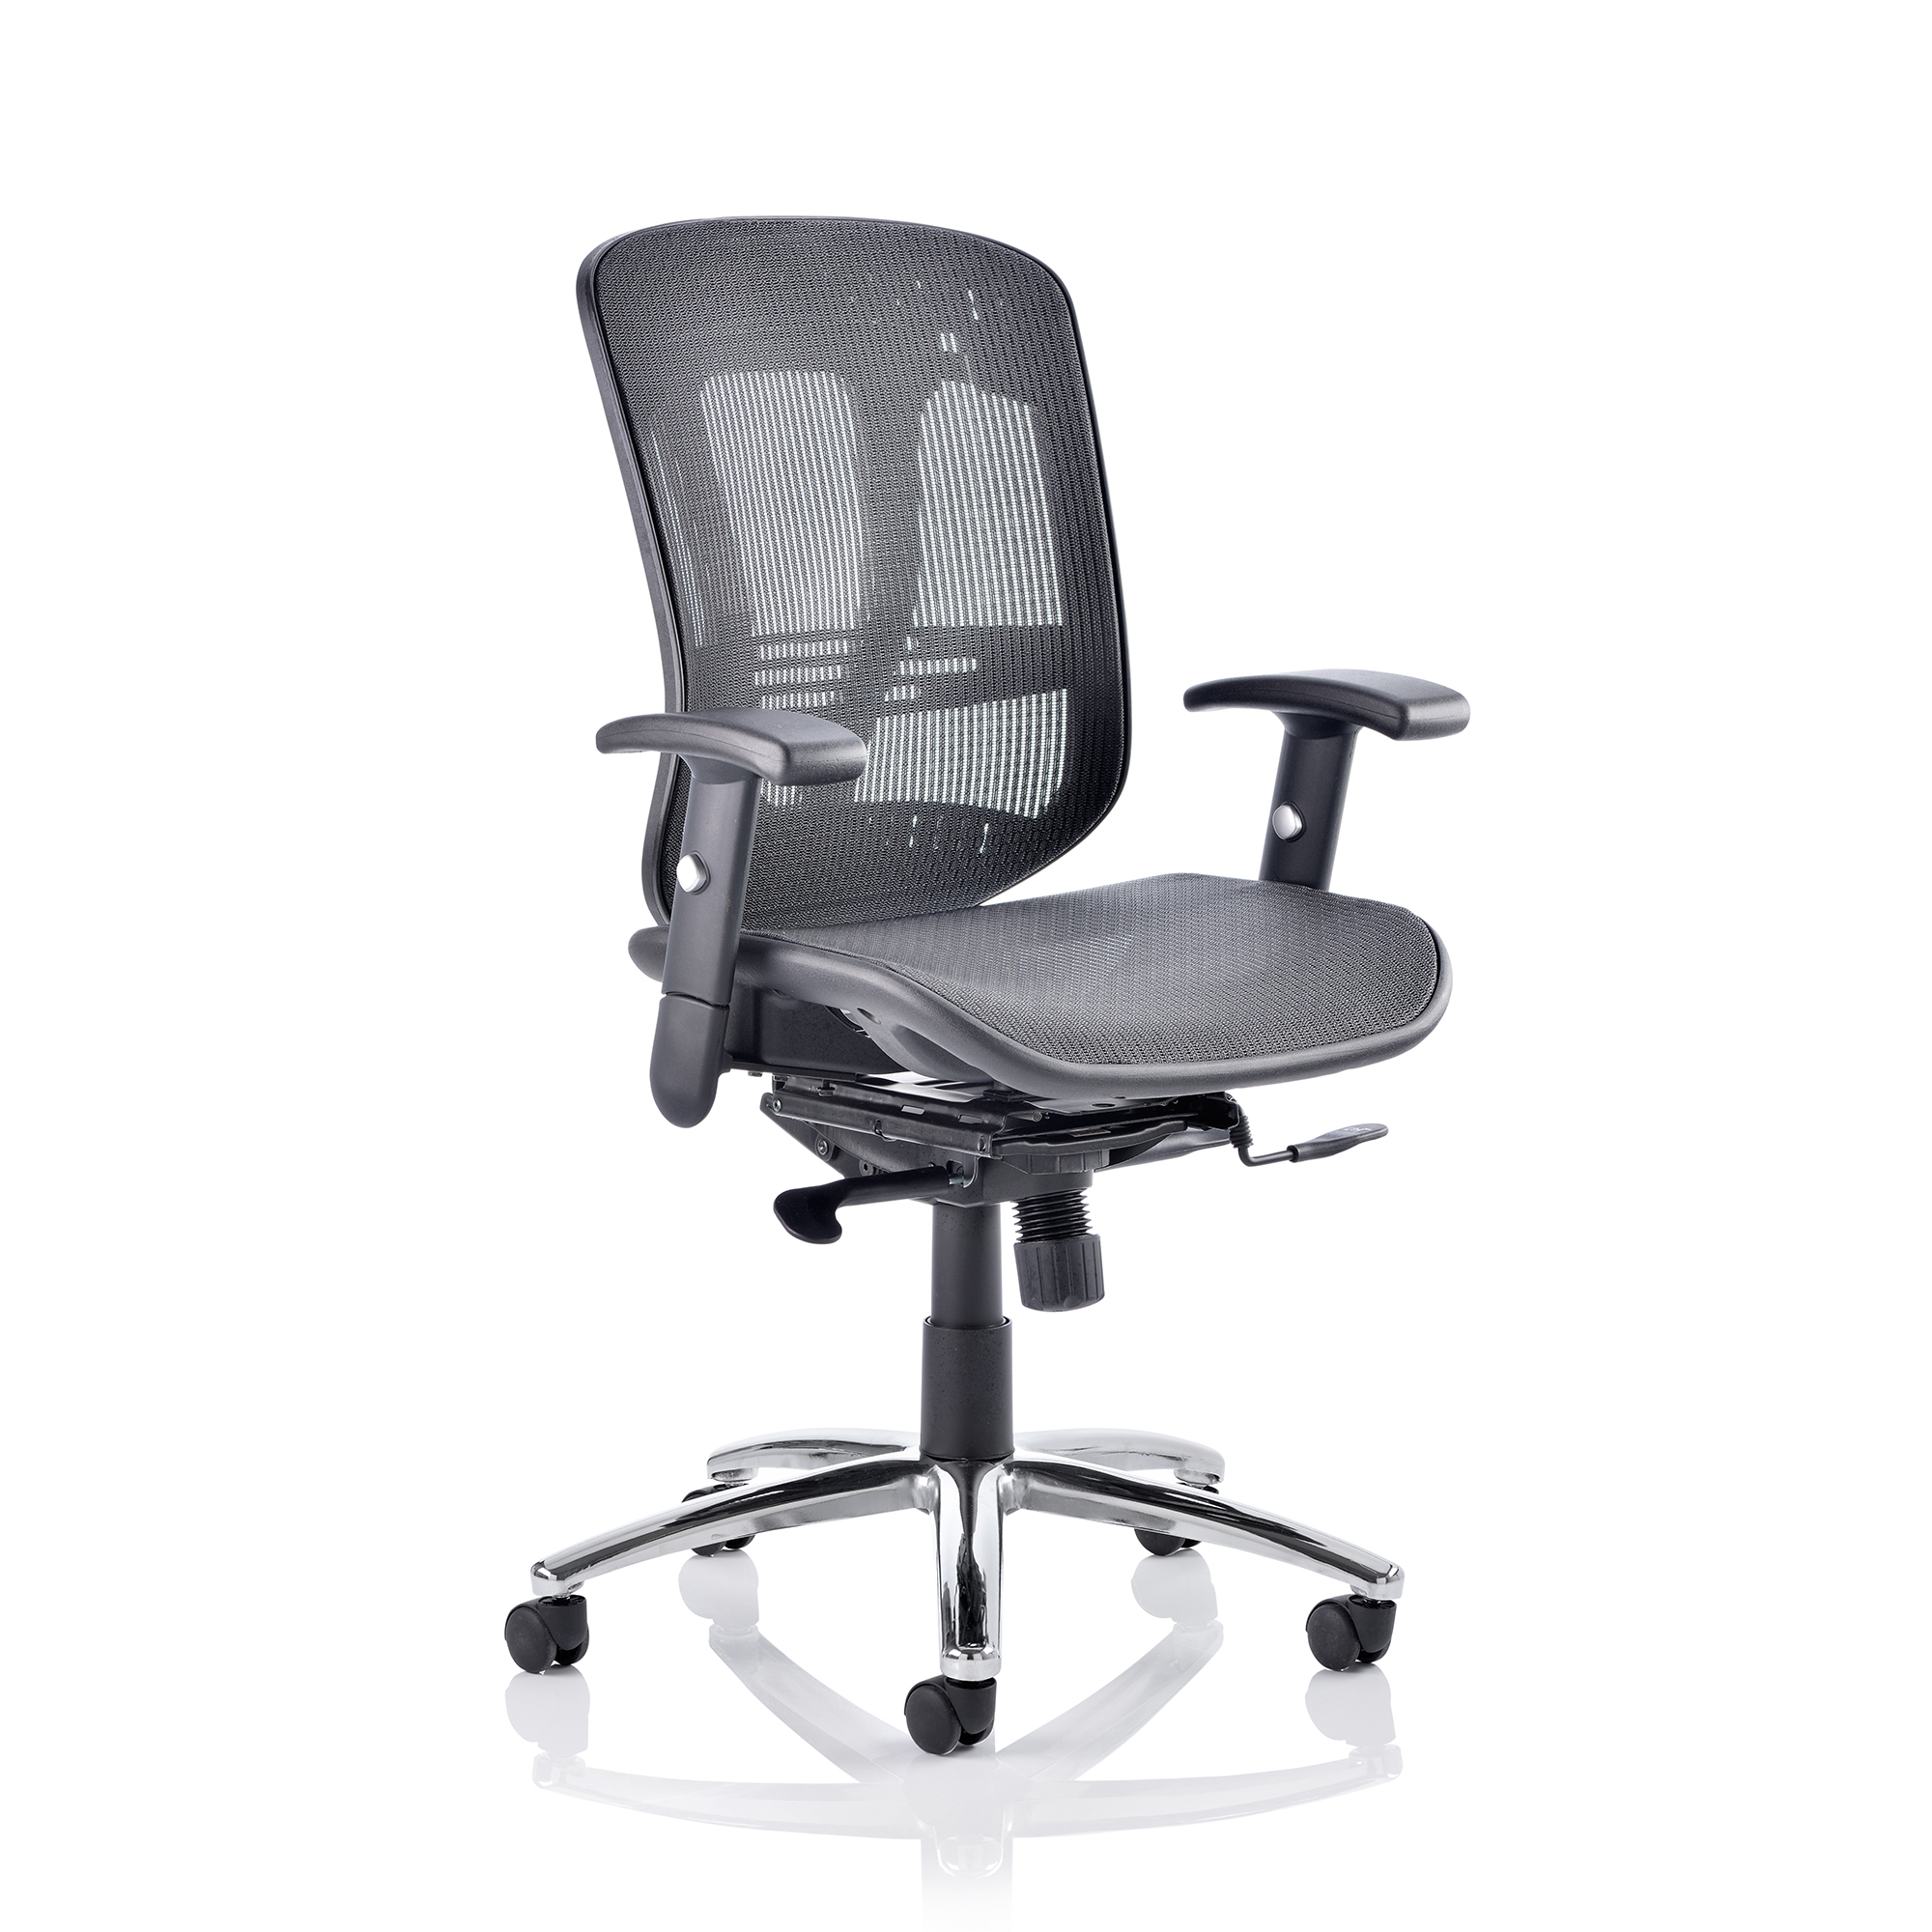 Executive seating Adroit Mirage II Executive Chair With Arms Without Headrest Mesh Black Ref EX000162